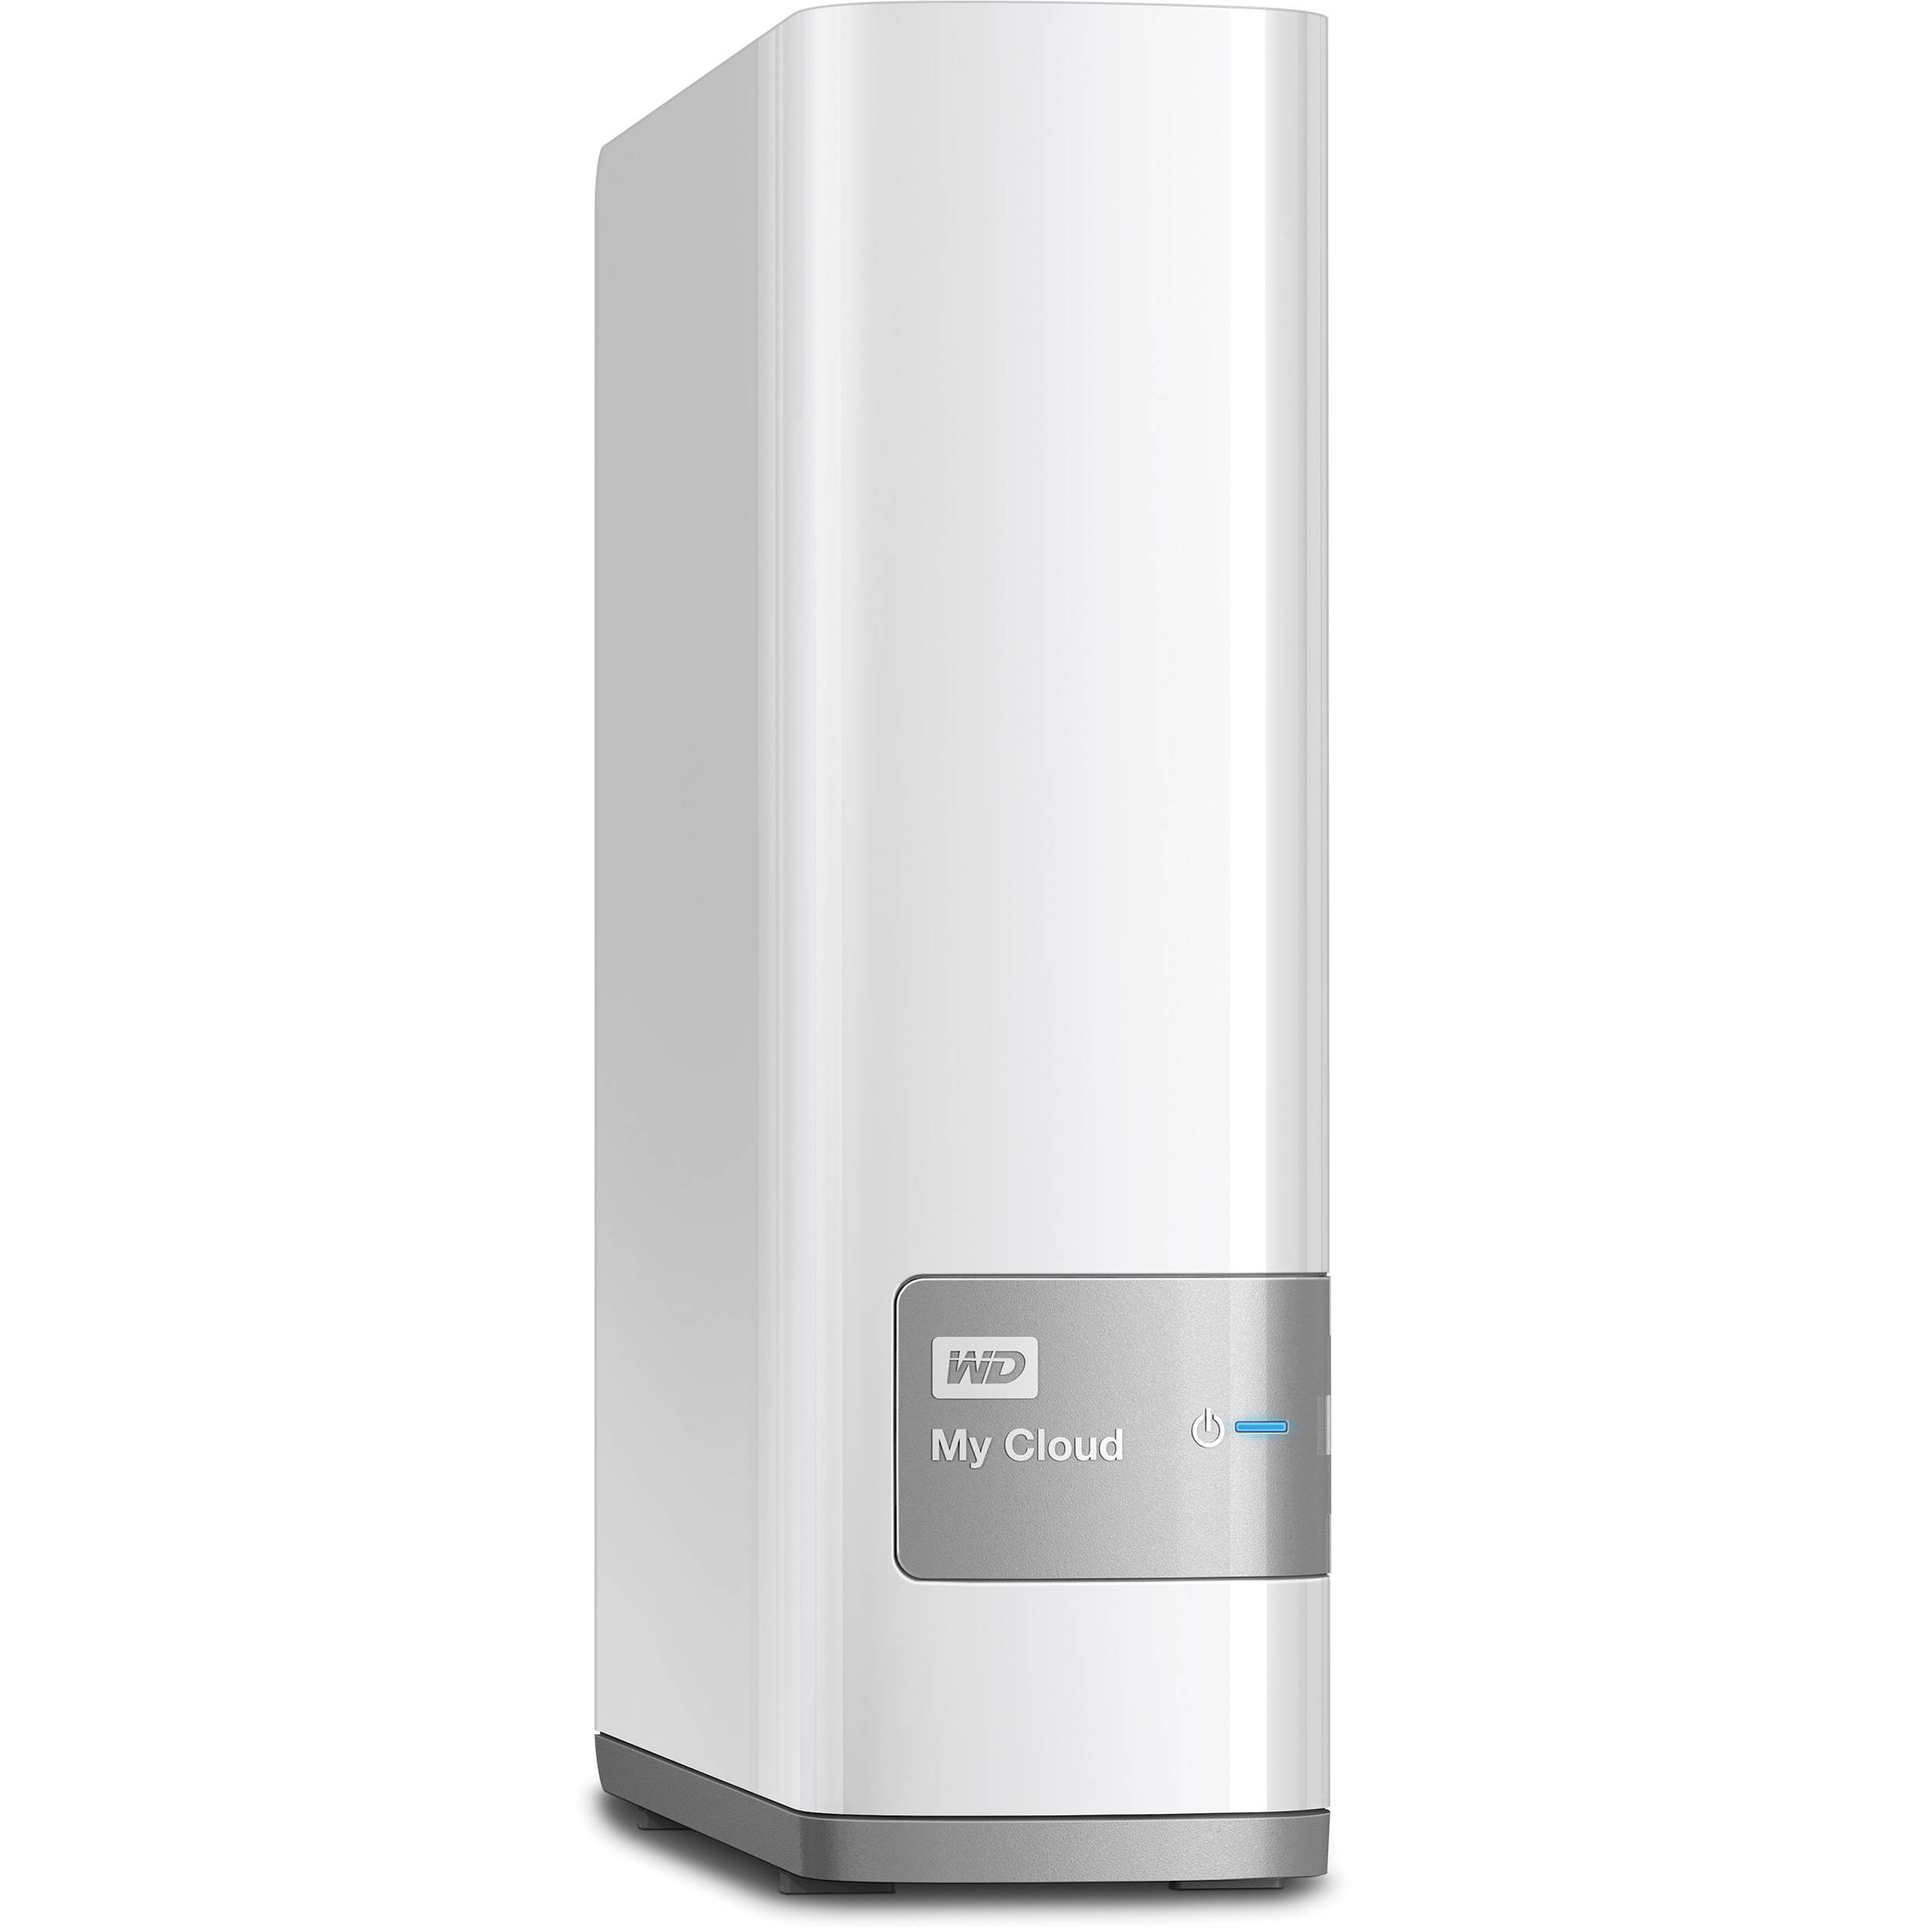 Wd 2tb My Cloud Personal Cloud Nas Storage Wdbctl0020hwt Nesn